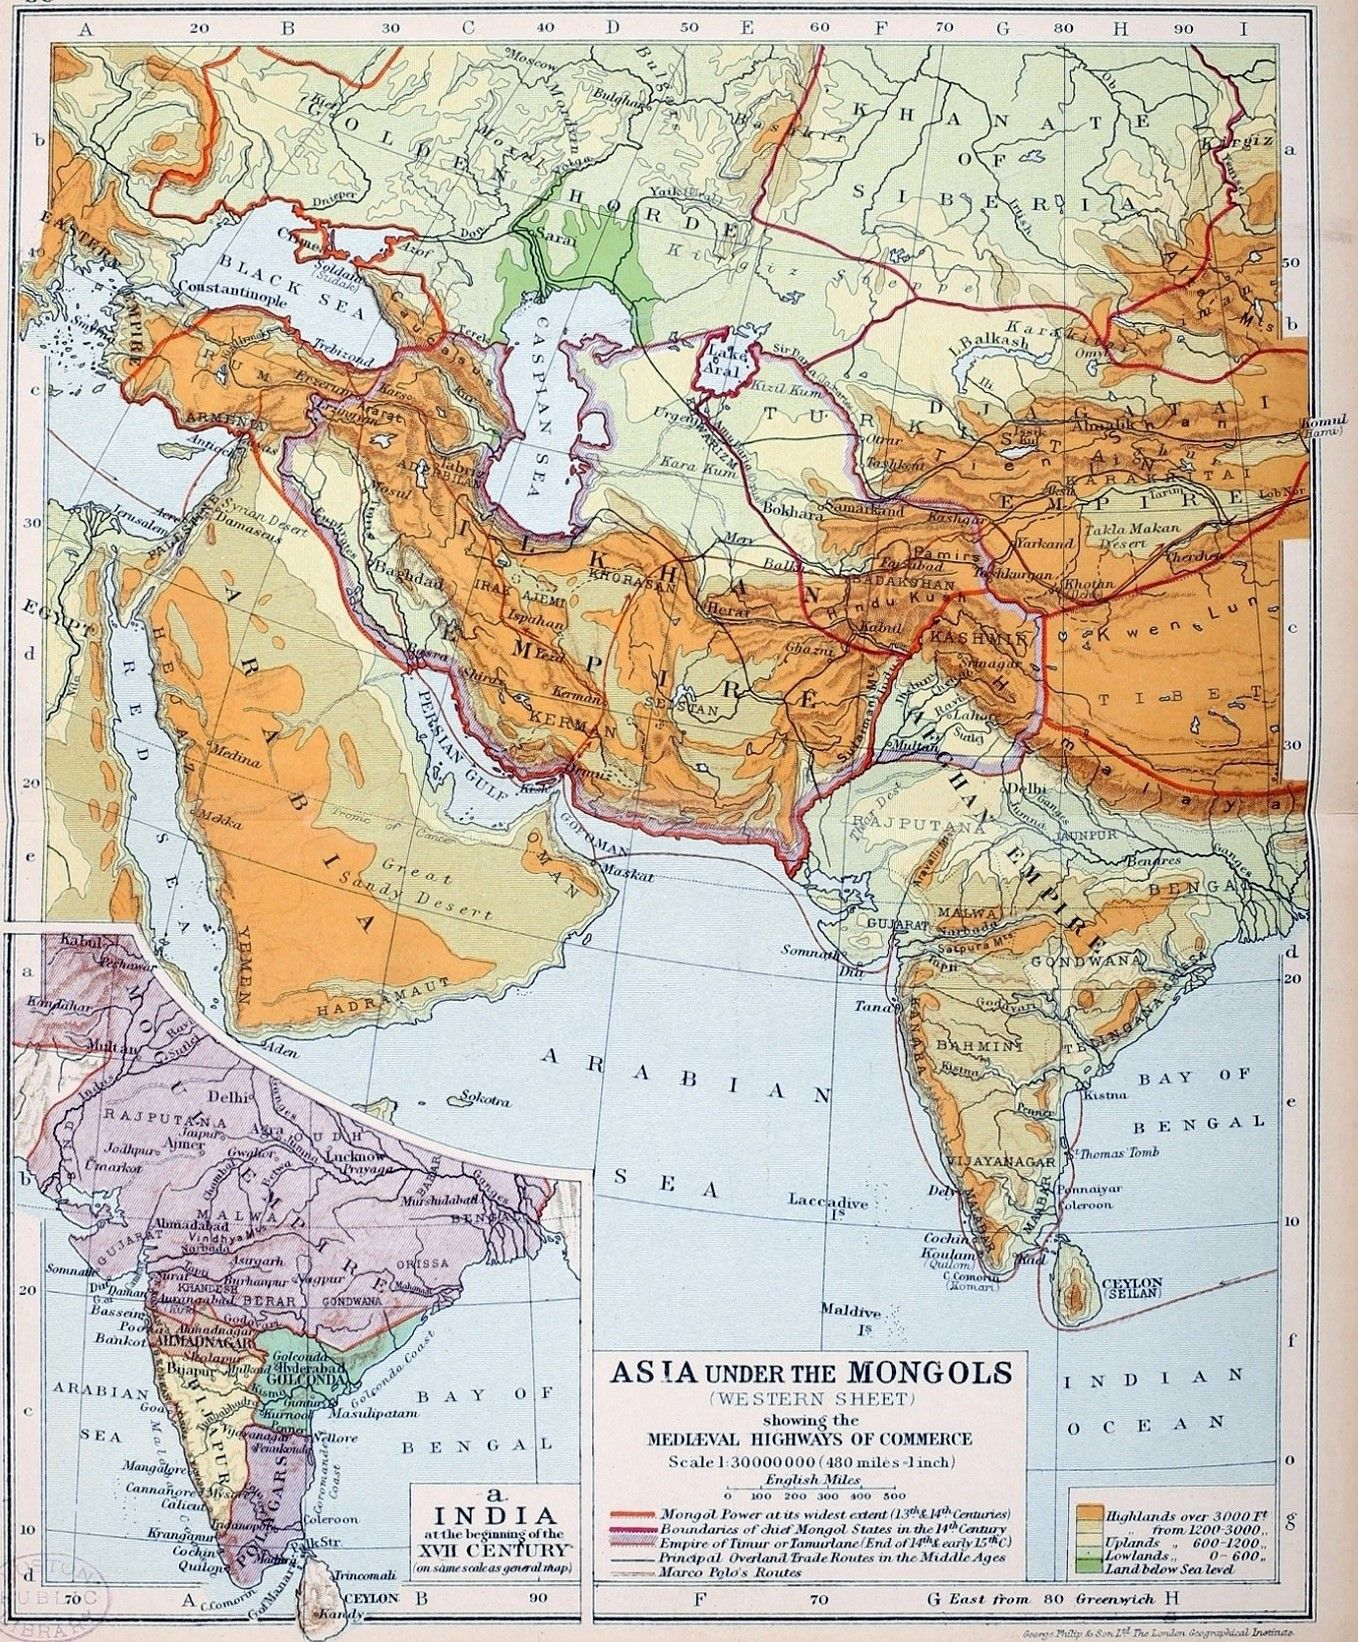 Global Map Of Asia.Asia Under The Mongols Western 13th And 14th Century